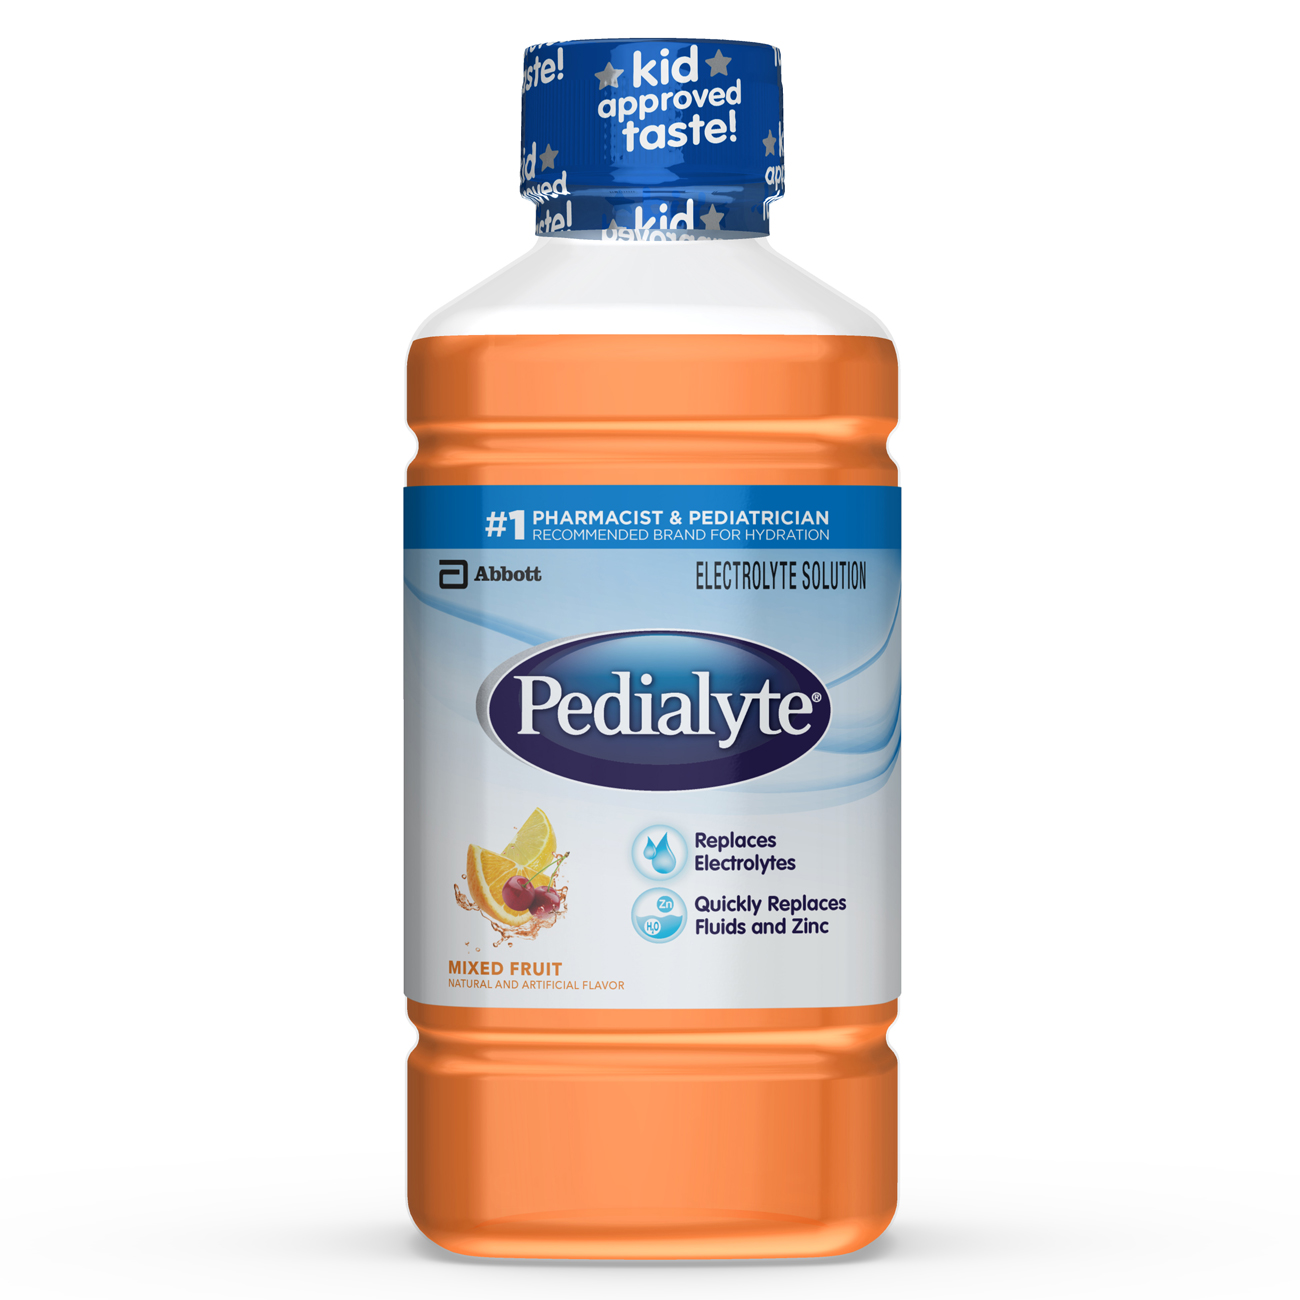 Pedialyte Electrolyte Solution, Electrolyte Drink, Mixed Fruit, Liquid, 35 fl oz